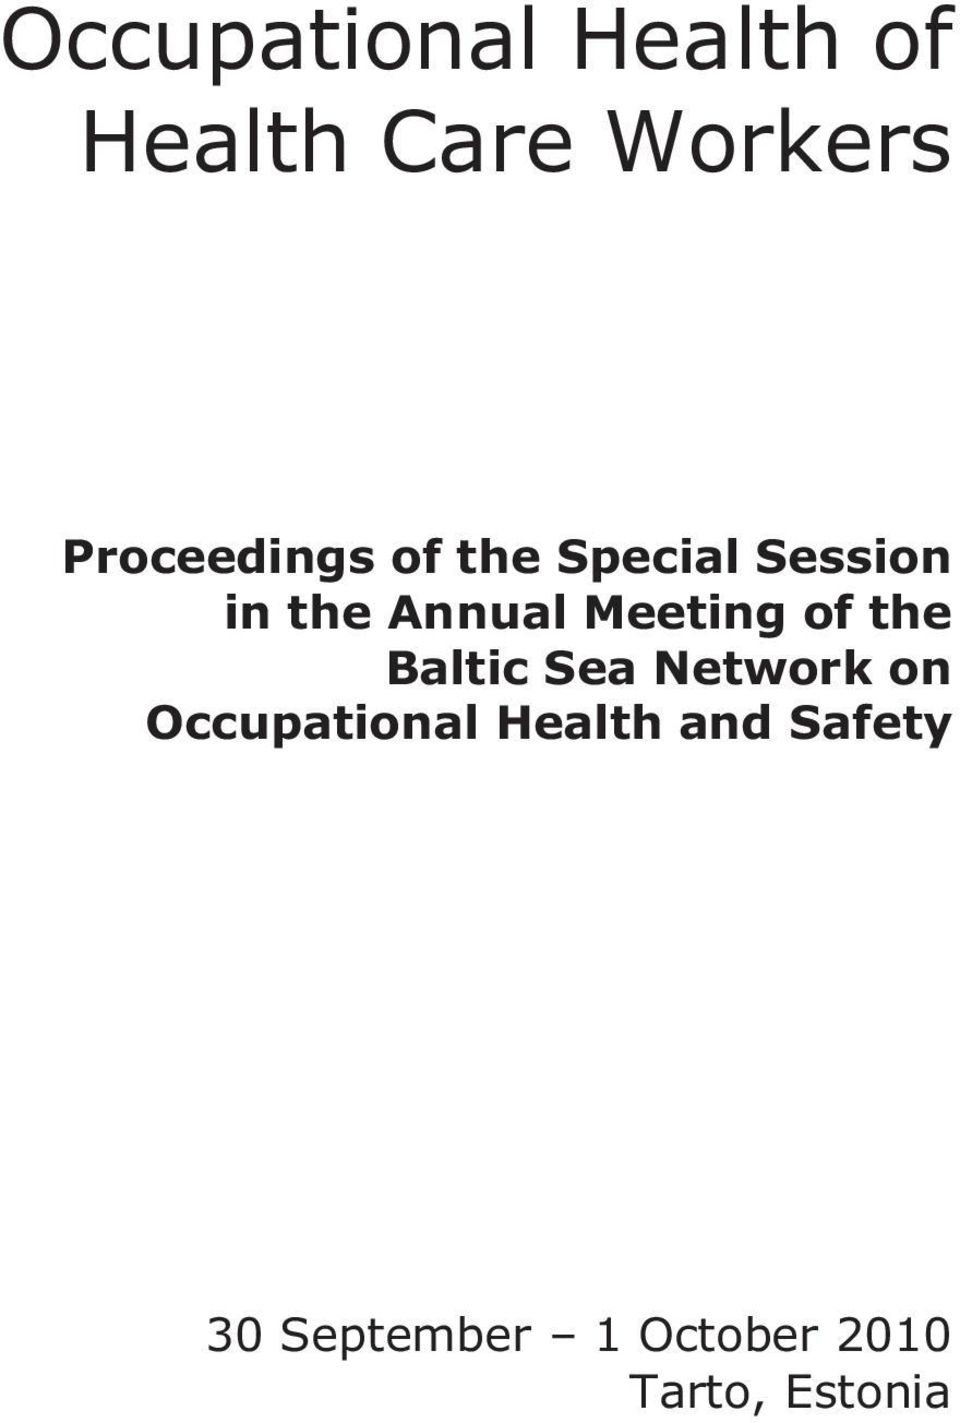 Meeting of the Baltic Sea Network on Occupational